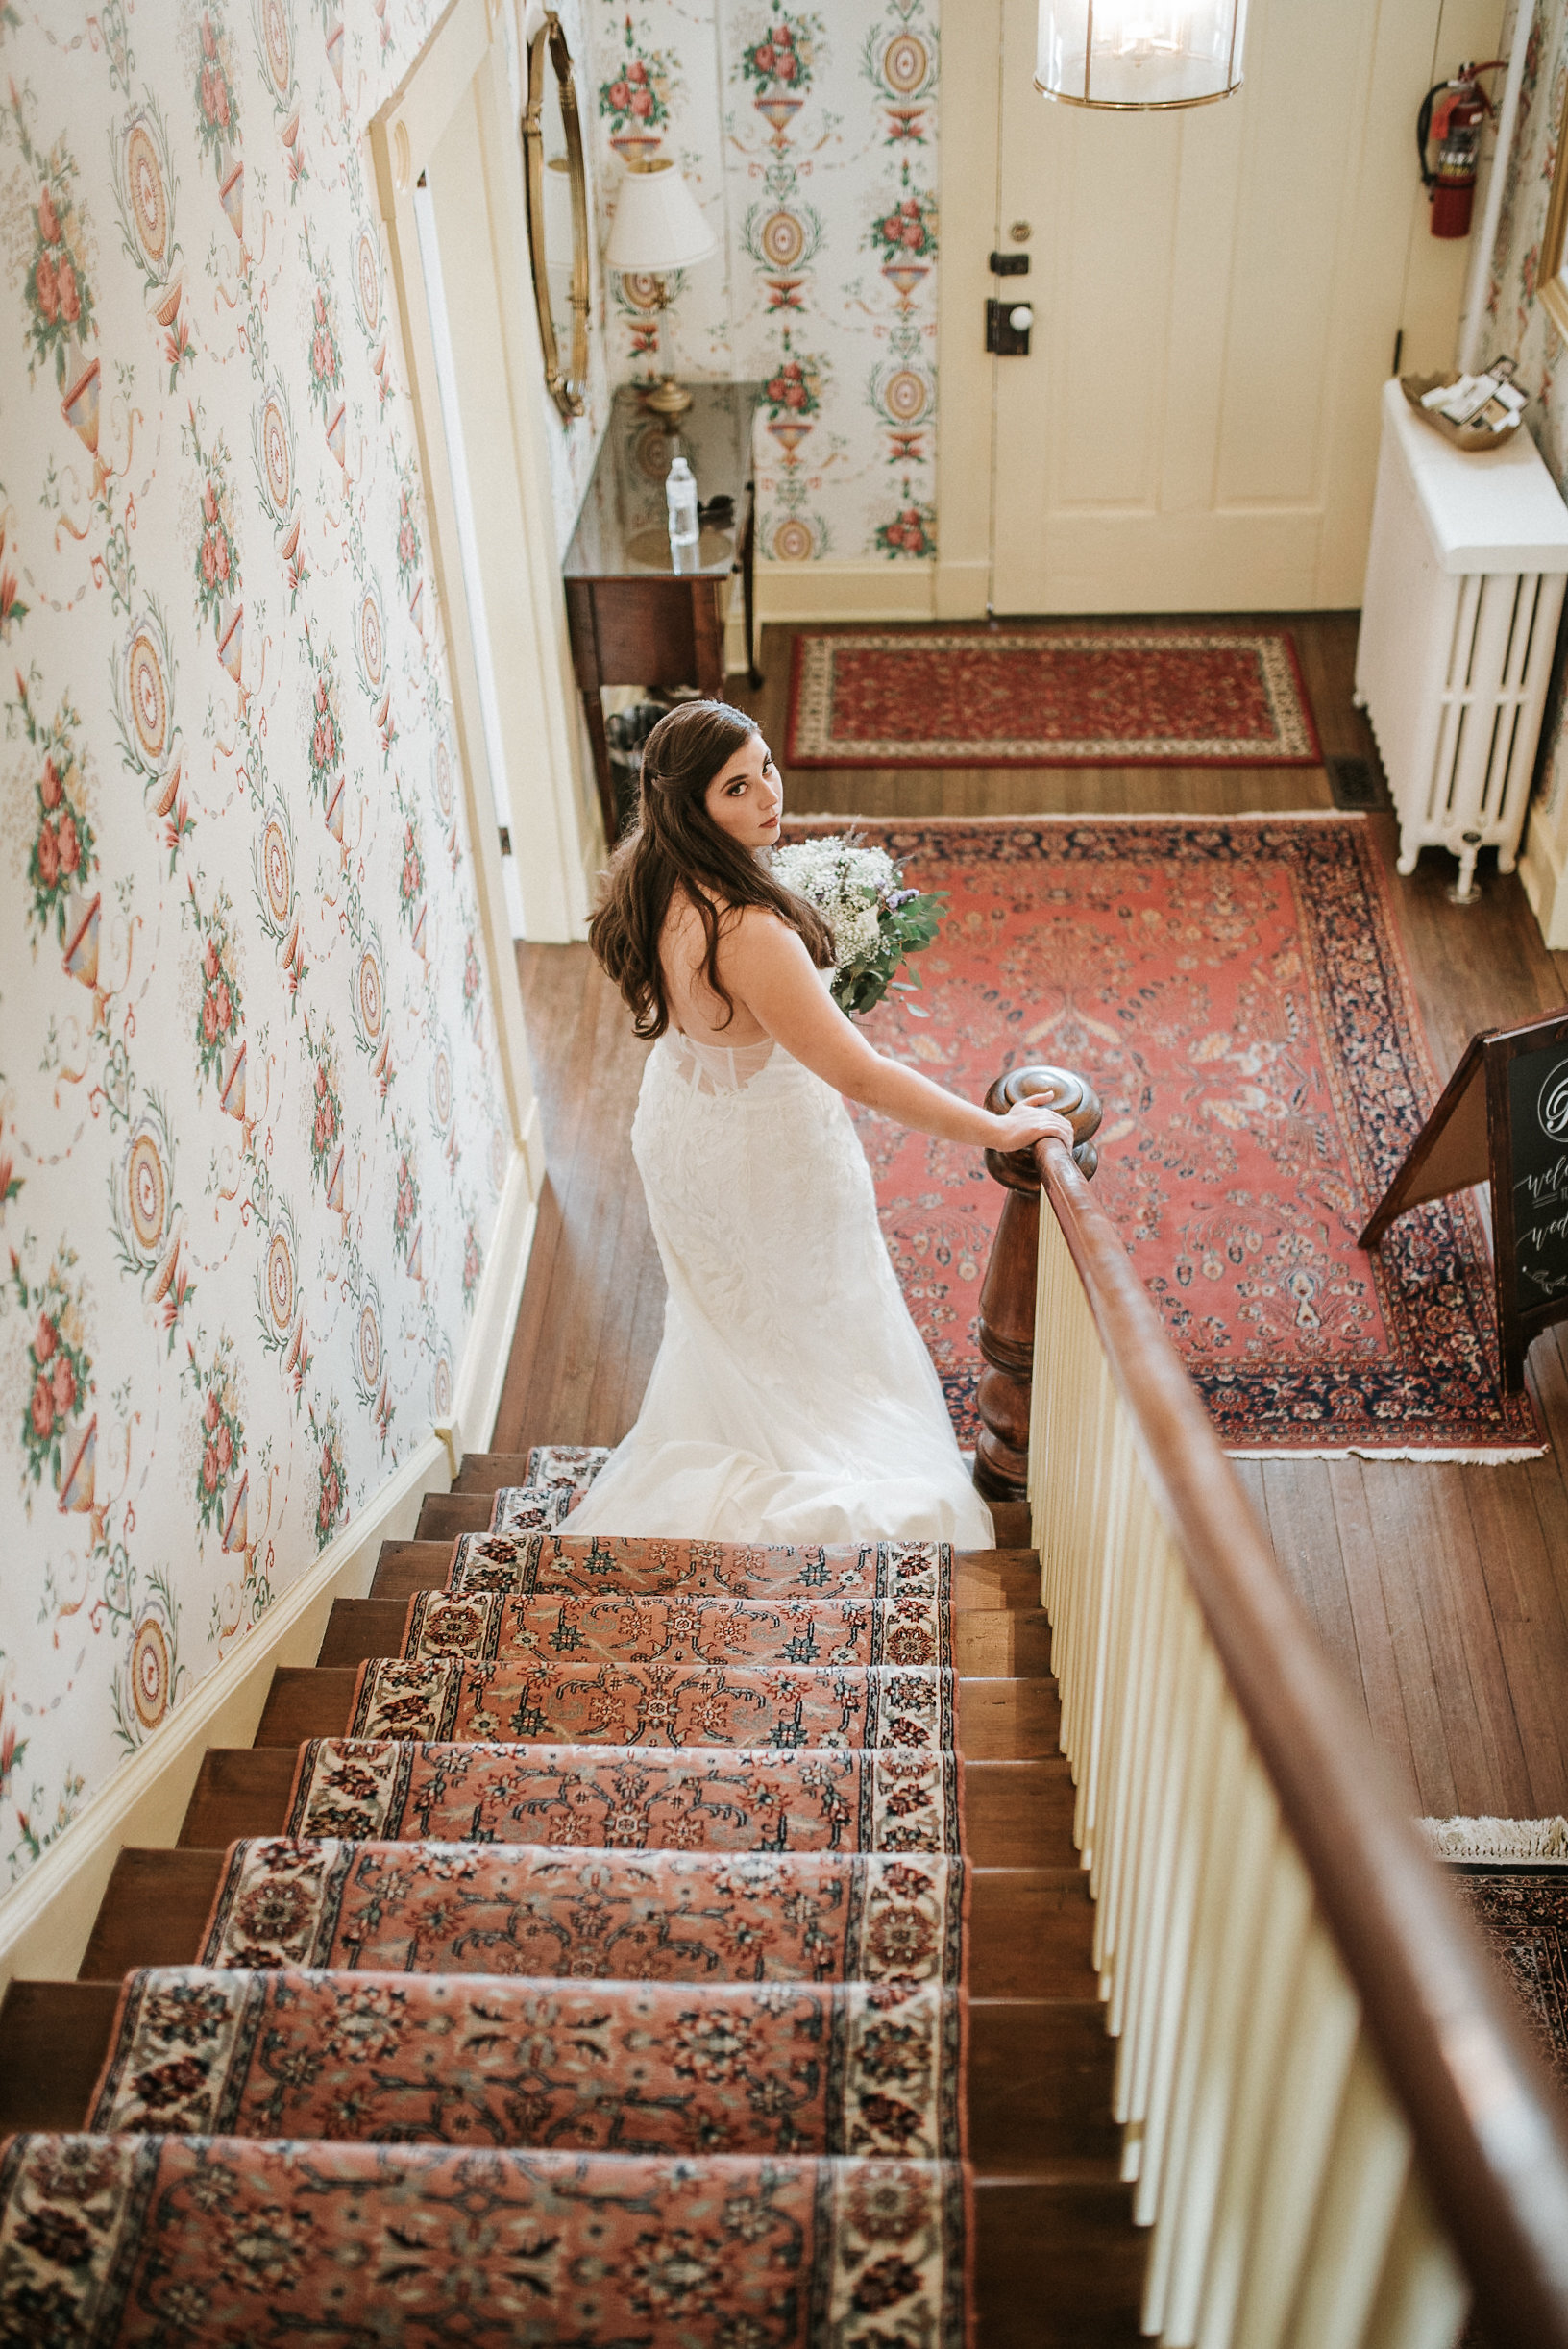 Bride looking over shoulder up stairs